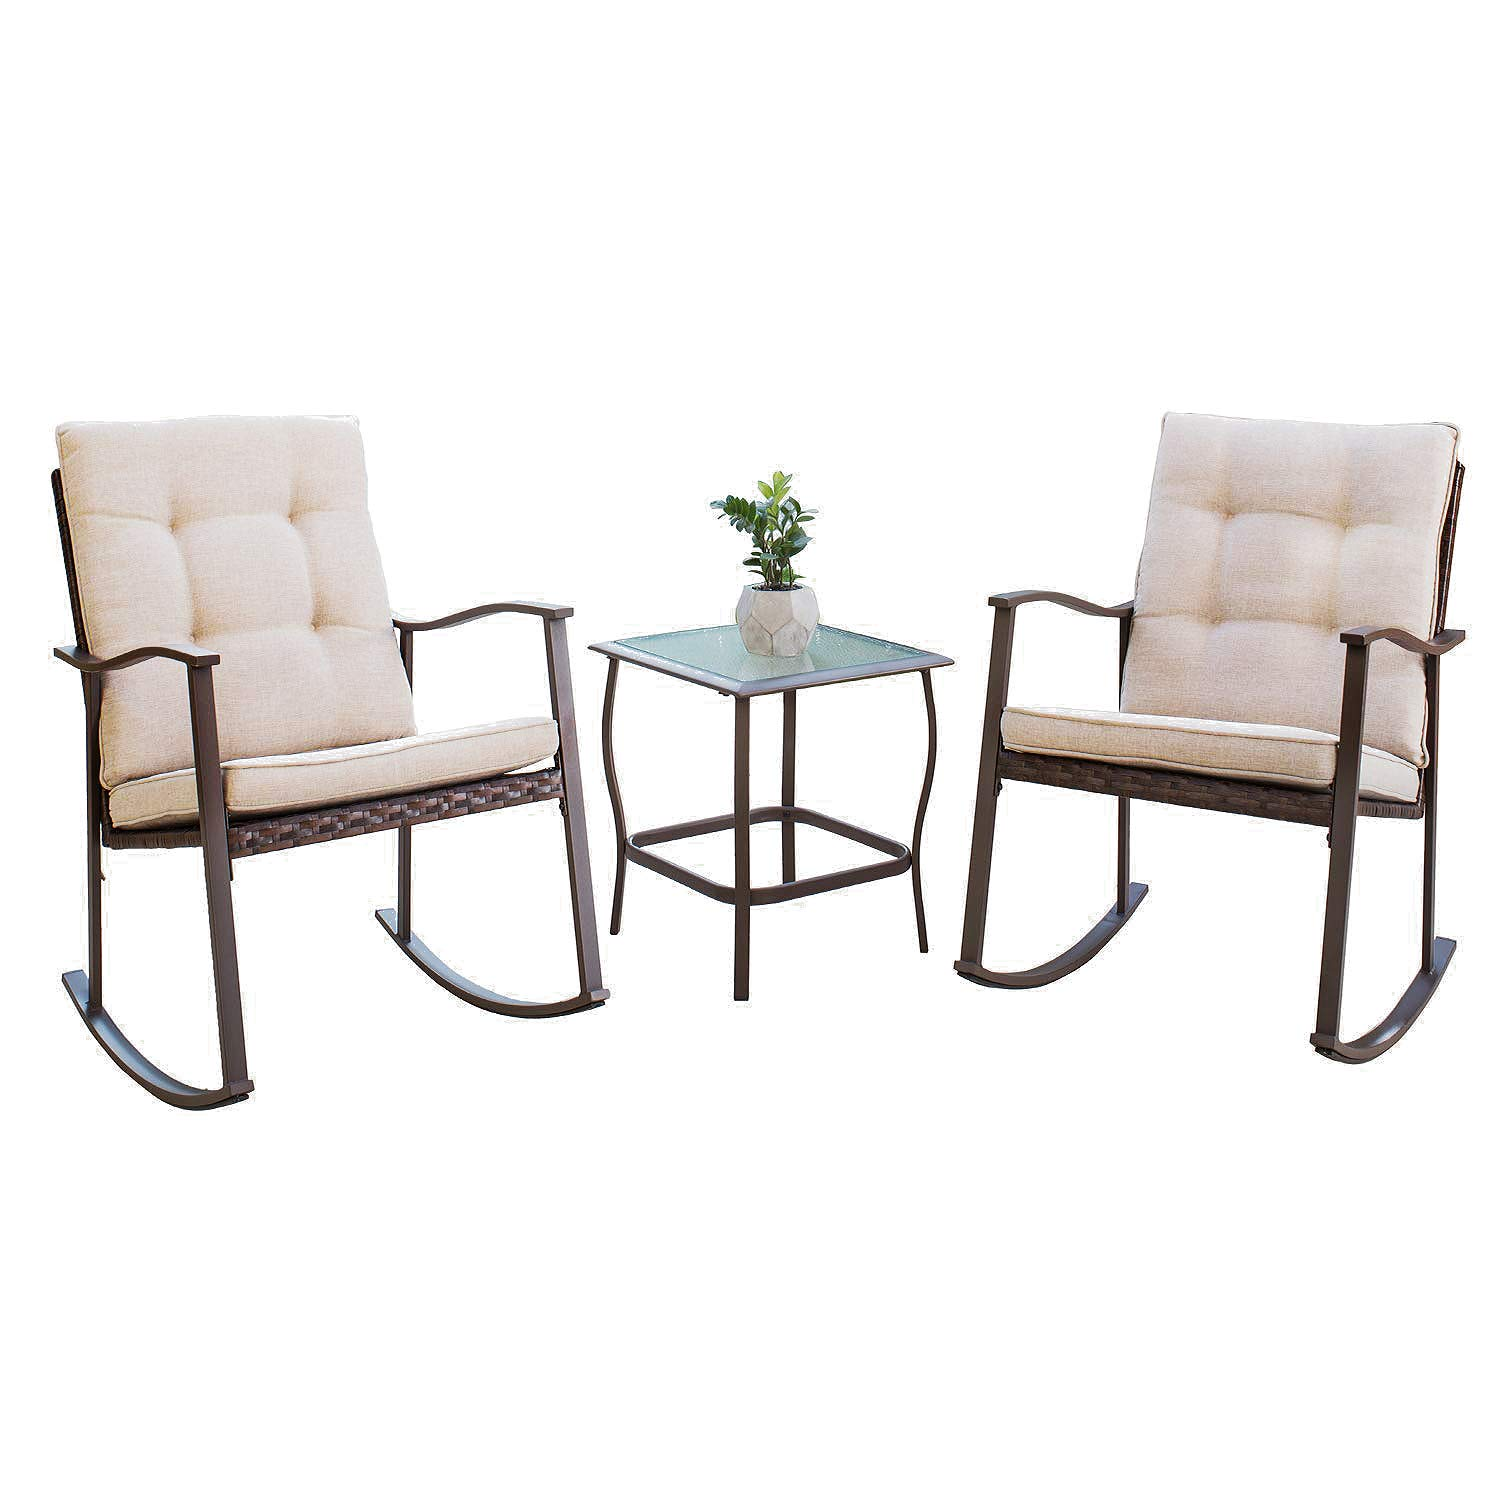 SOLAURA Outdoor Furniture 3-Piece Rocking Wicker Patio Bistro Set Brown Wicker with Beige Cushions – Two Rocking Chairs with Glass Coffee Table